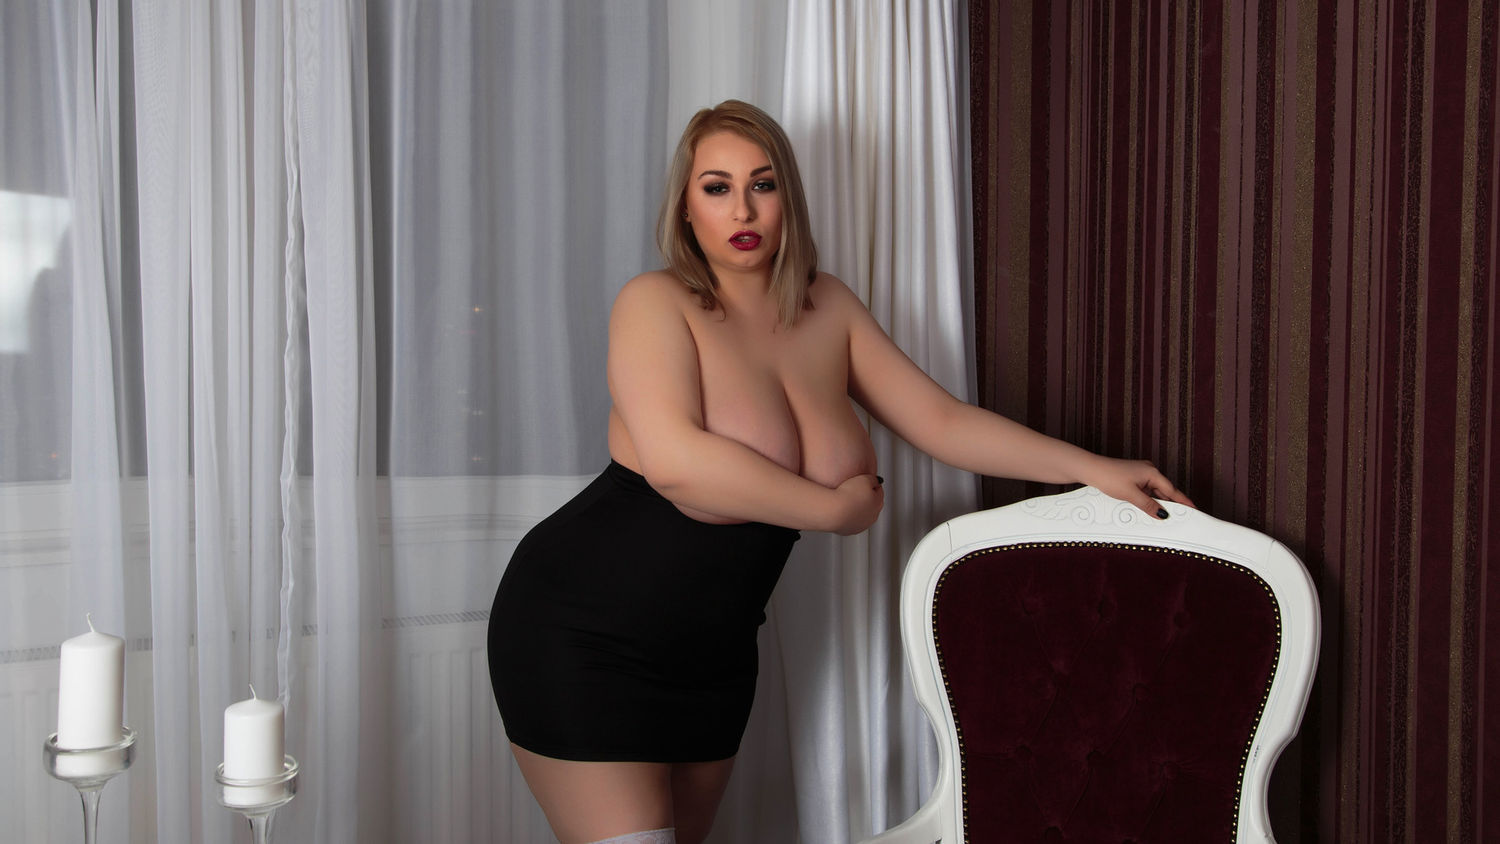 Busty Kat charming bigg  sex cam model